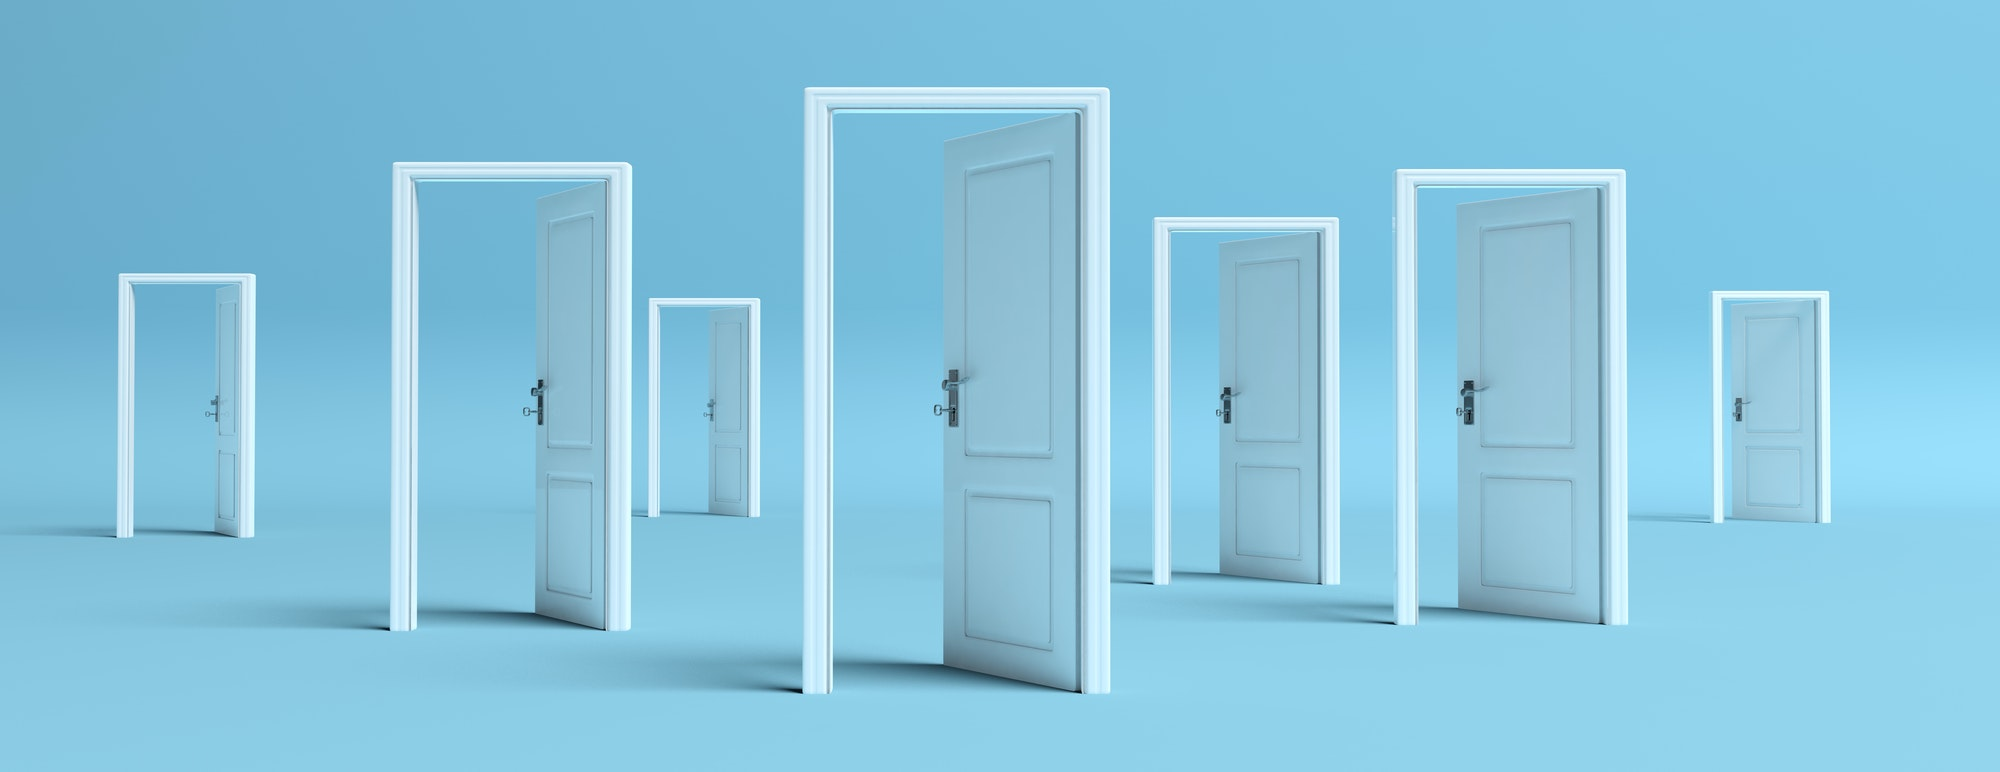 White doors opened on blue background, banner. 3d illustration